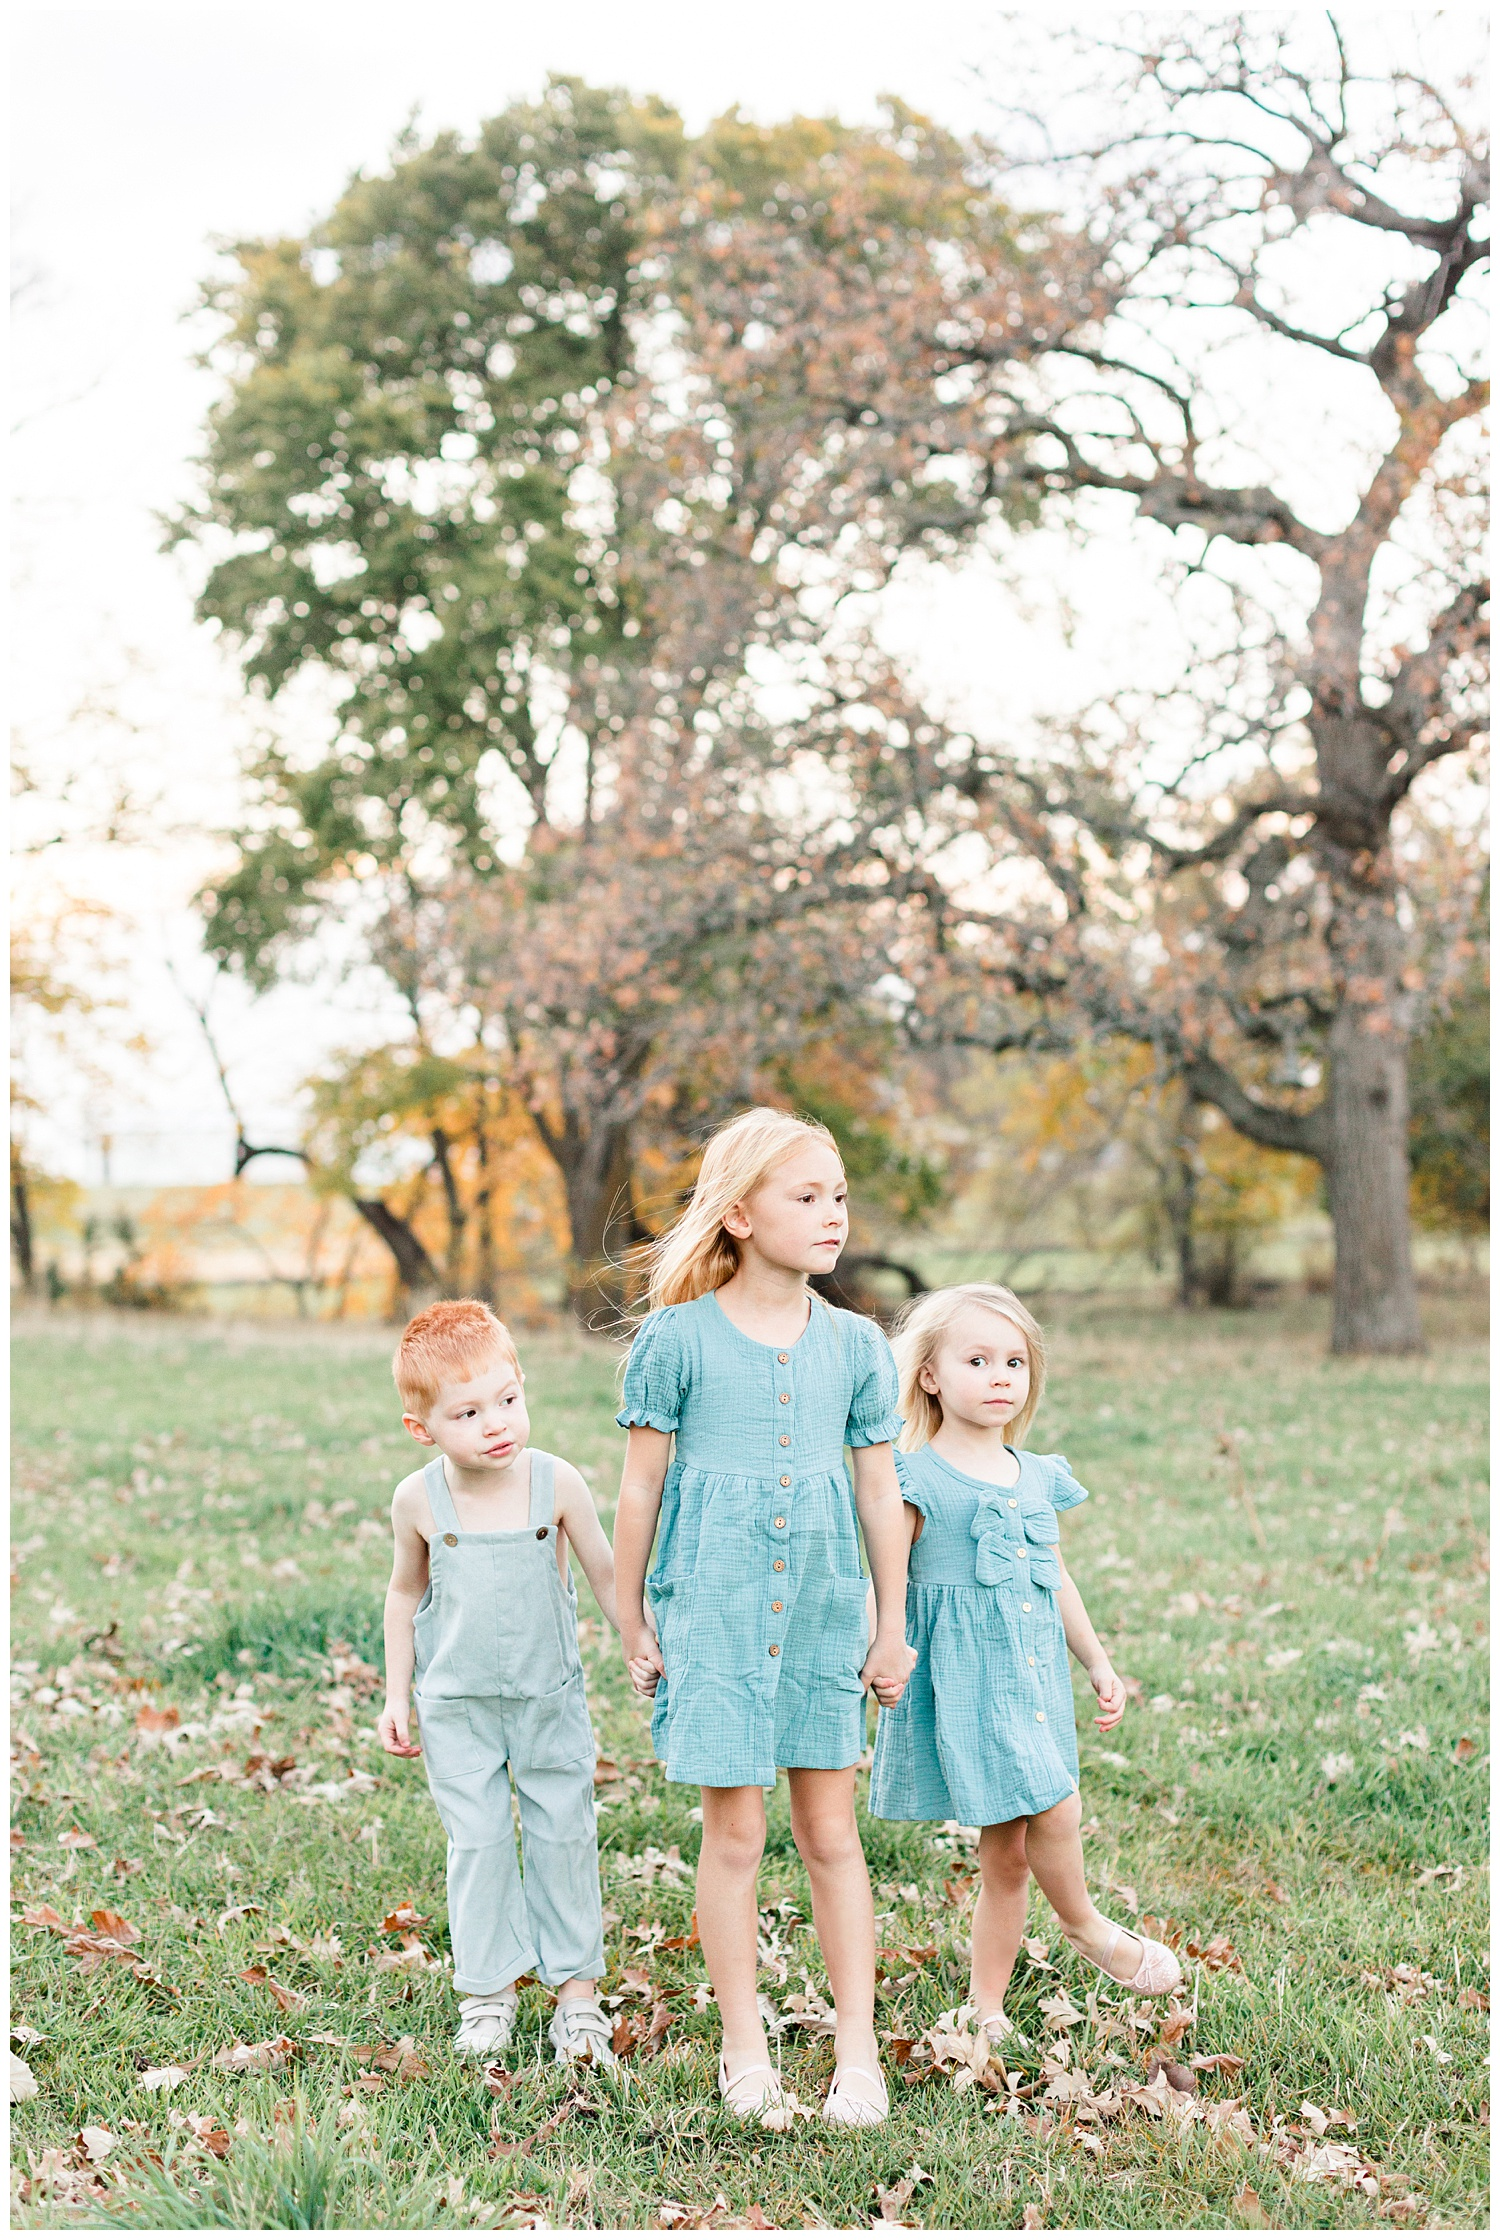 Three children dressed in vintage teal stand holding hands in a grassy field looking onward | CB Studio